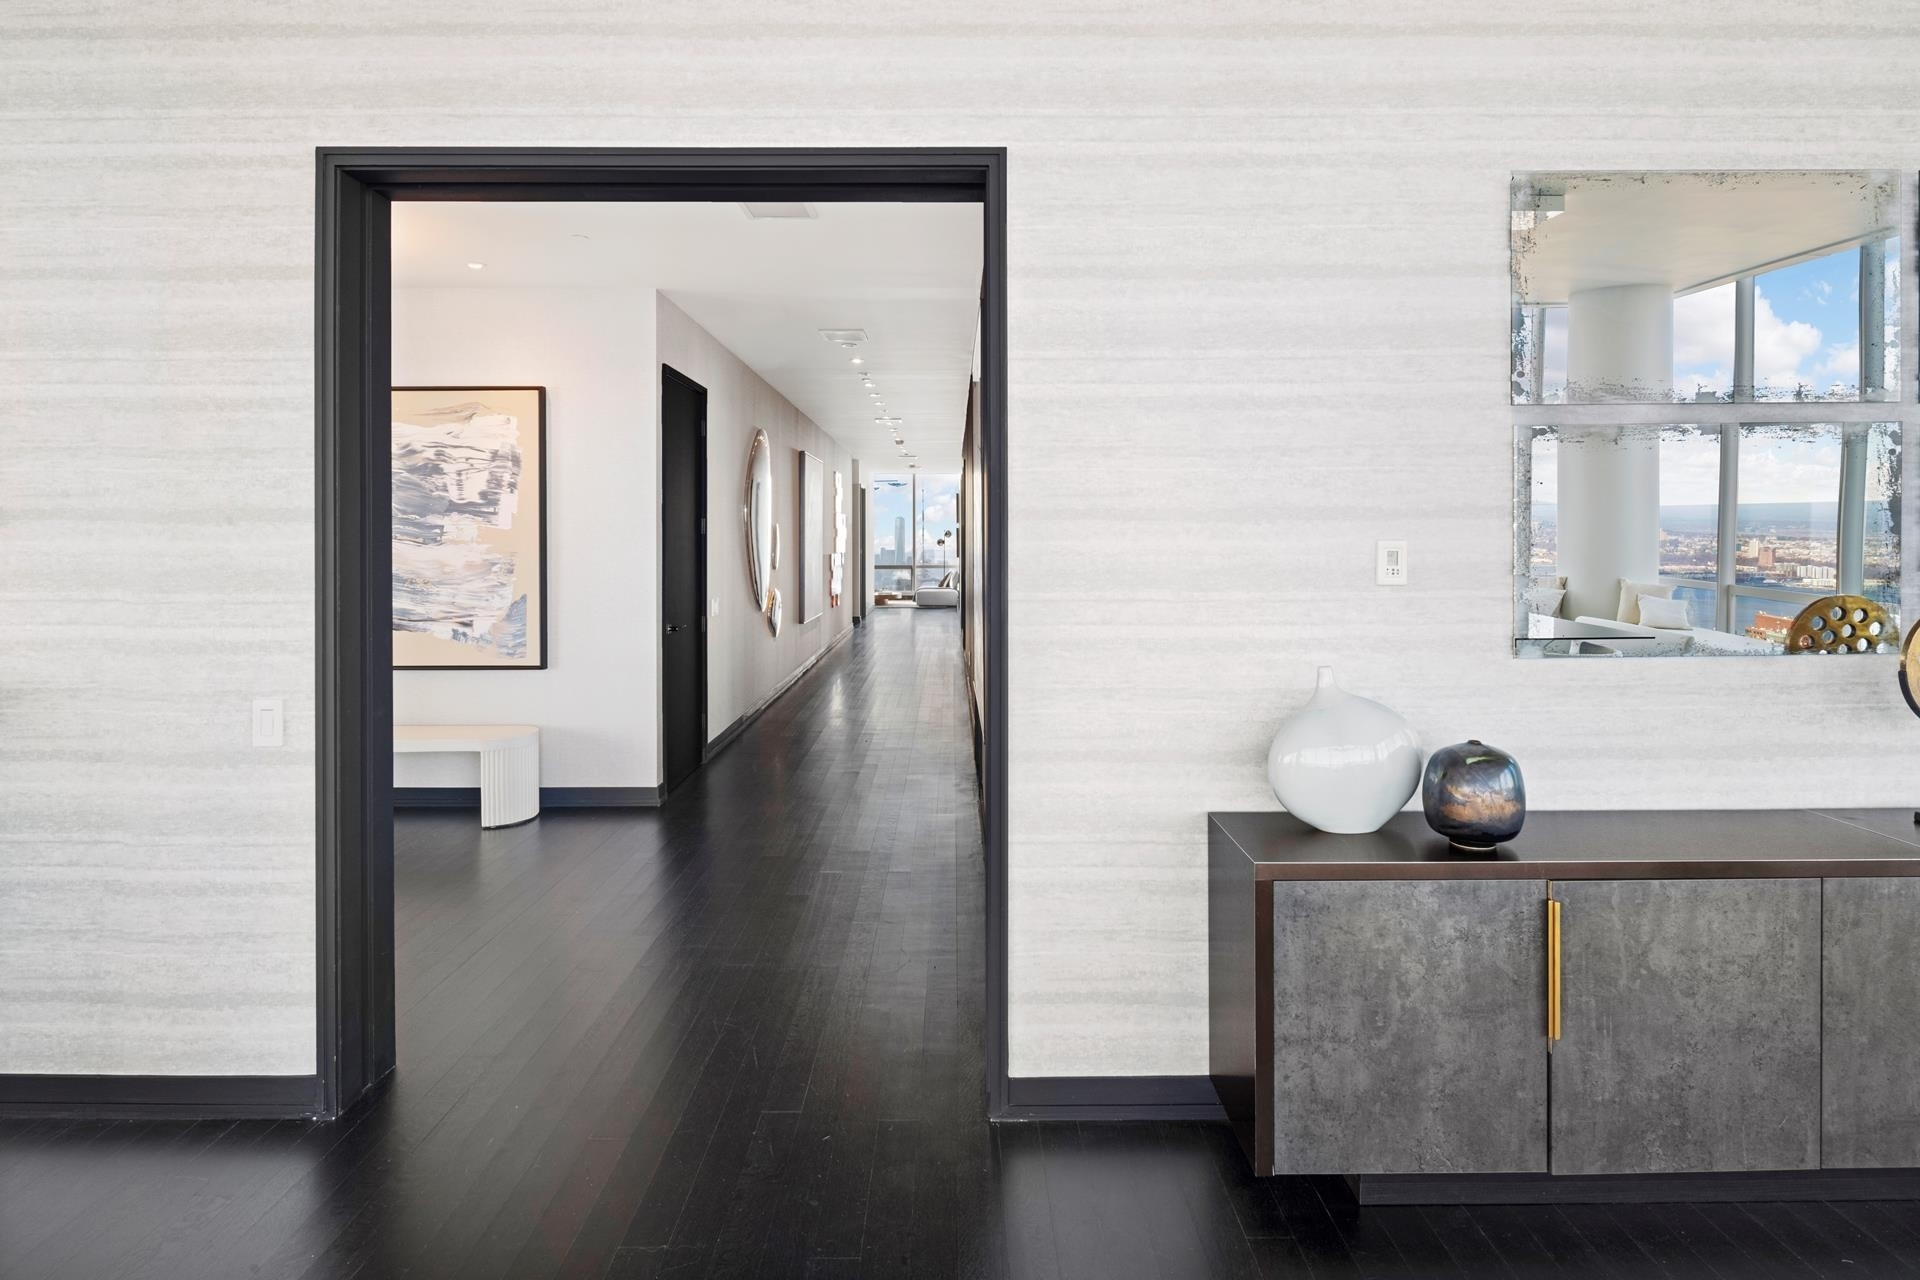 9. Condominiums for Sale at One57, 157 West 57th St, 87 Midtown West, New York, NY 10019